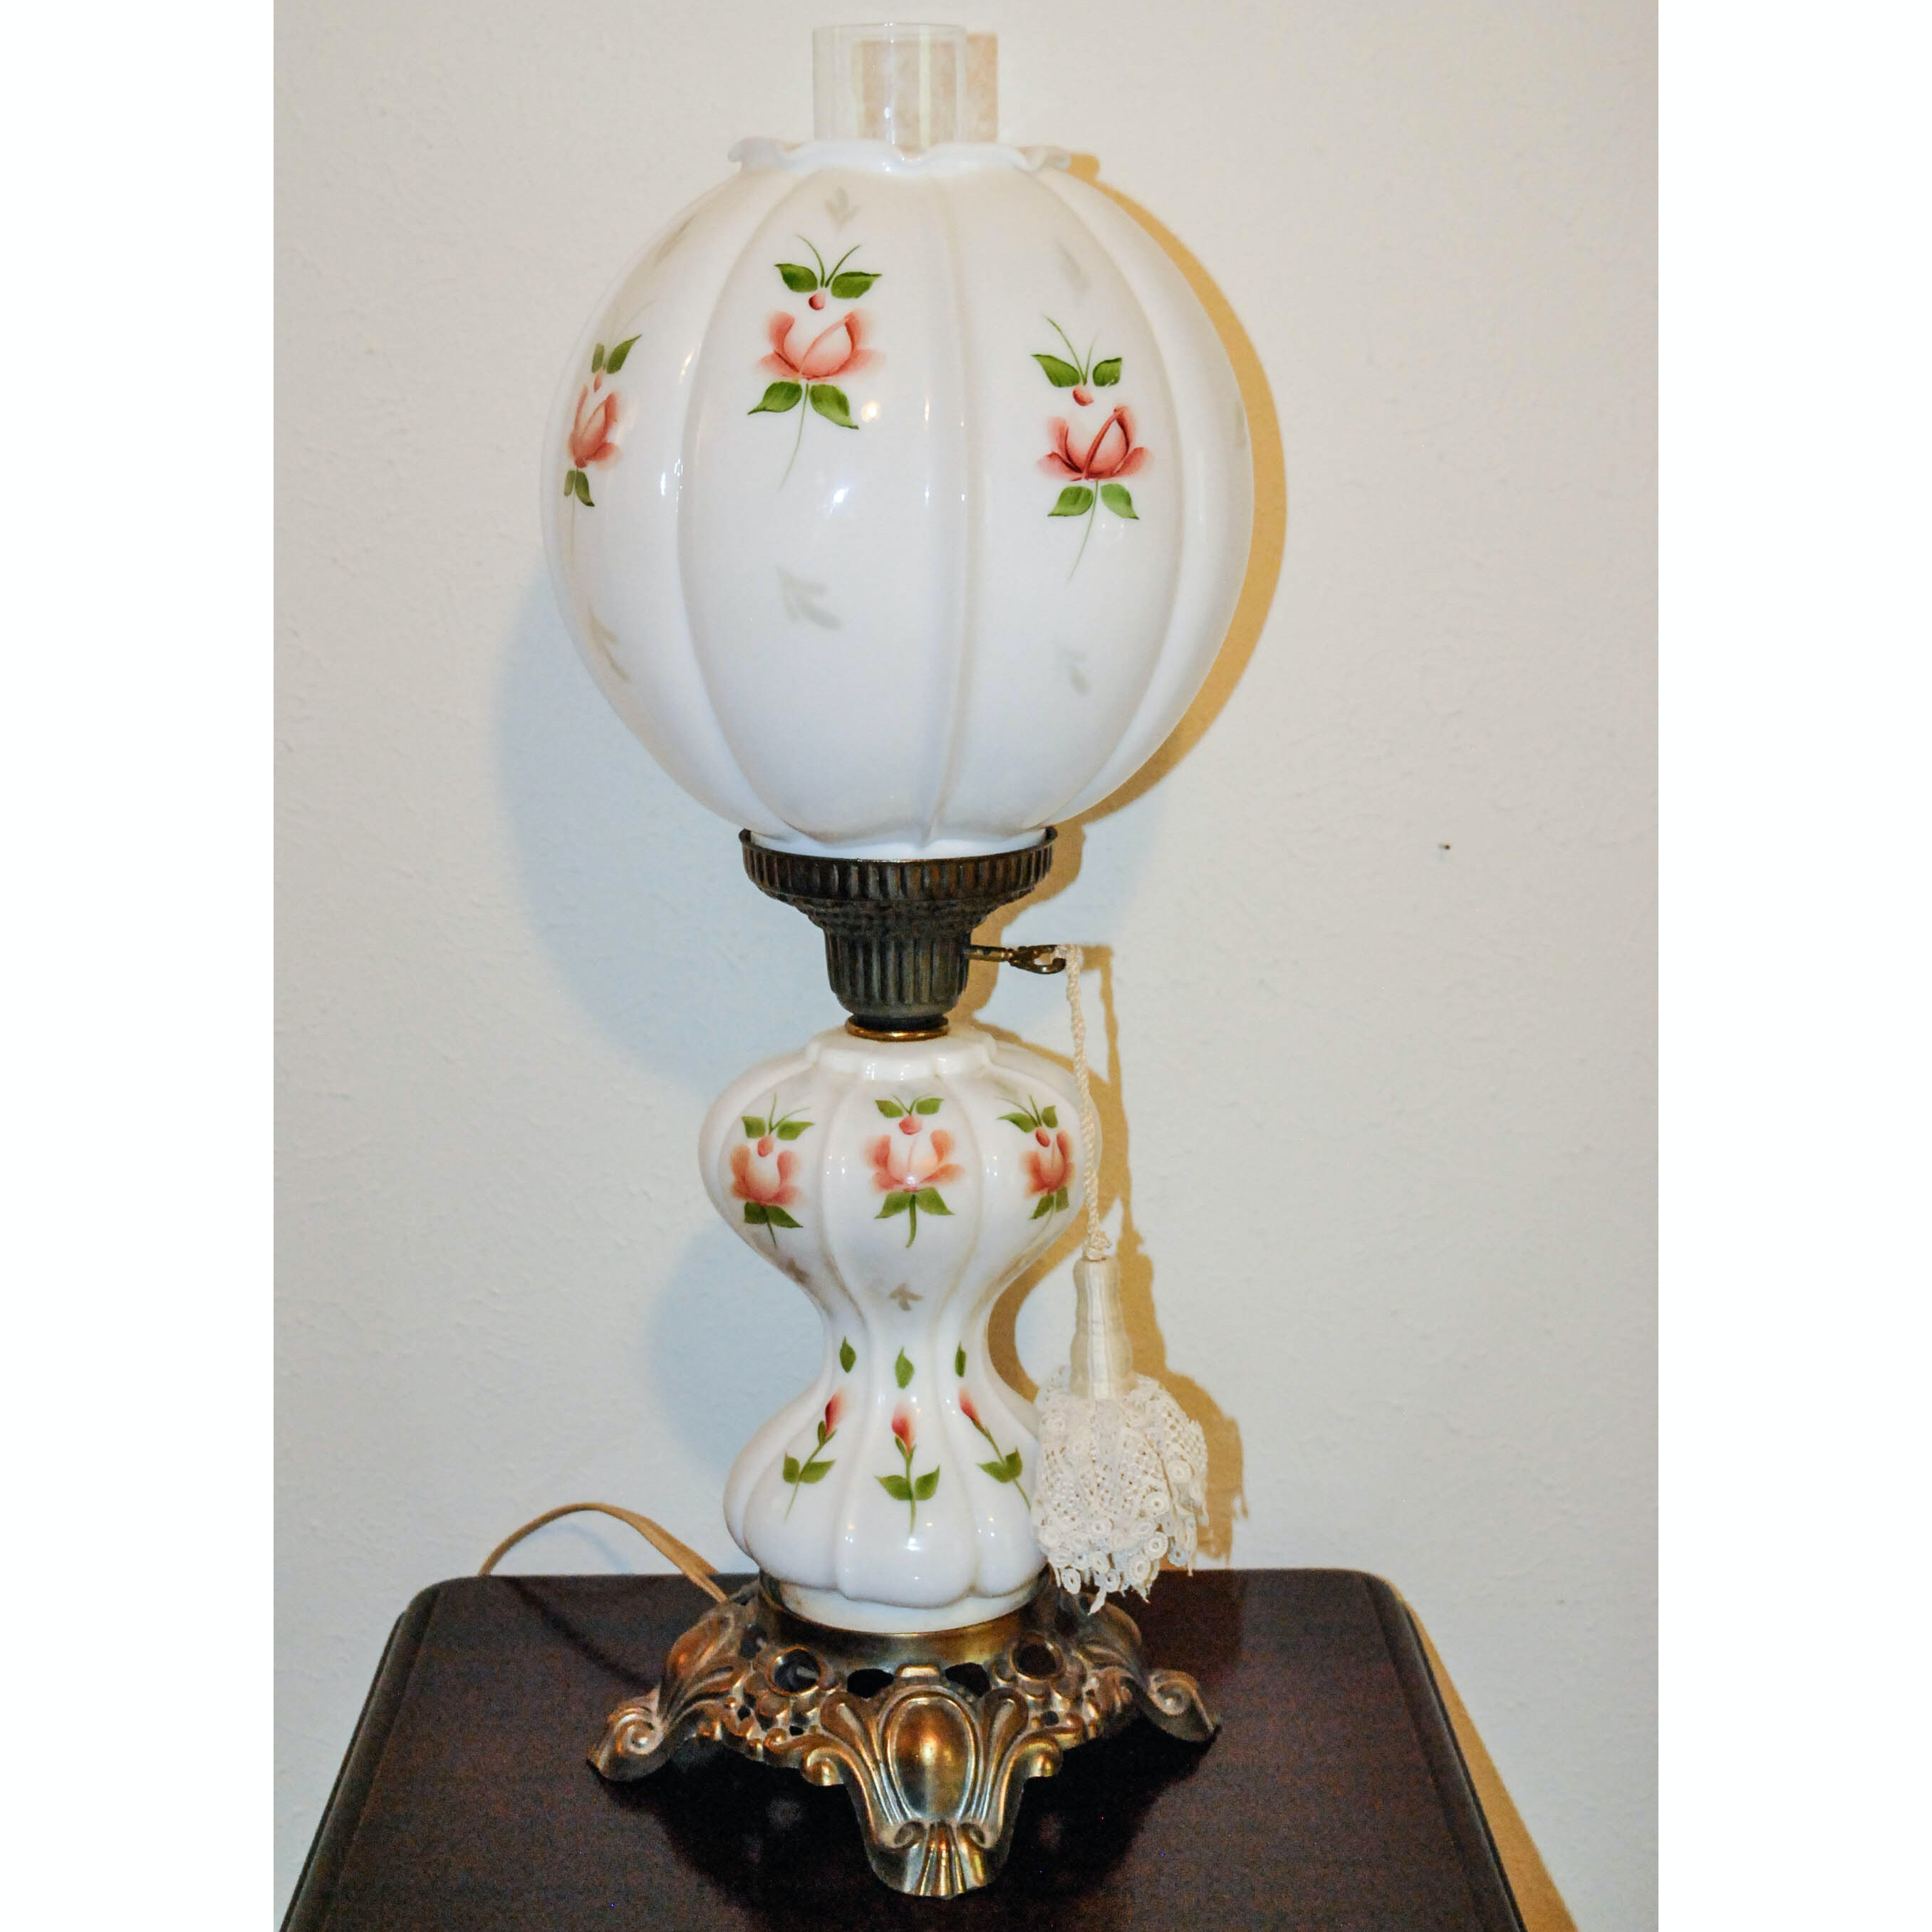 Hand-Painted Converted Glass and Metal Parlor Lamp With Rose Motif Decoration